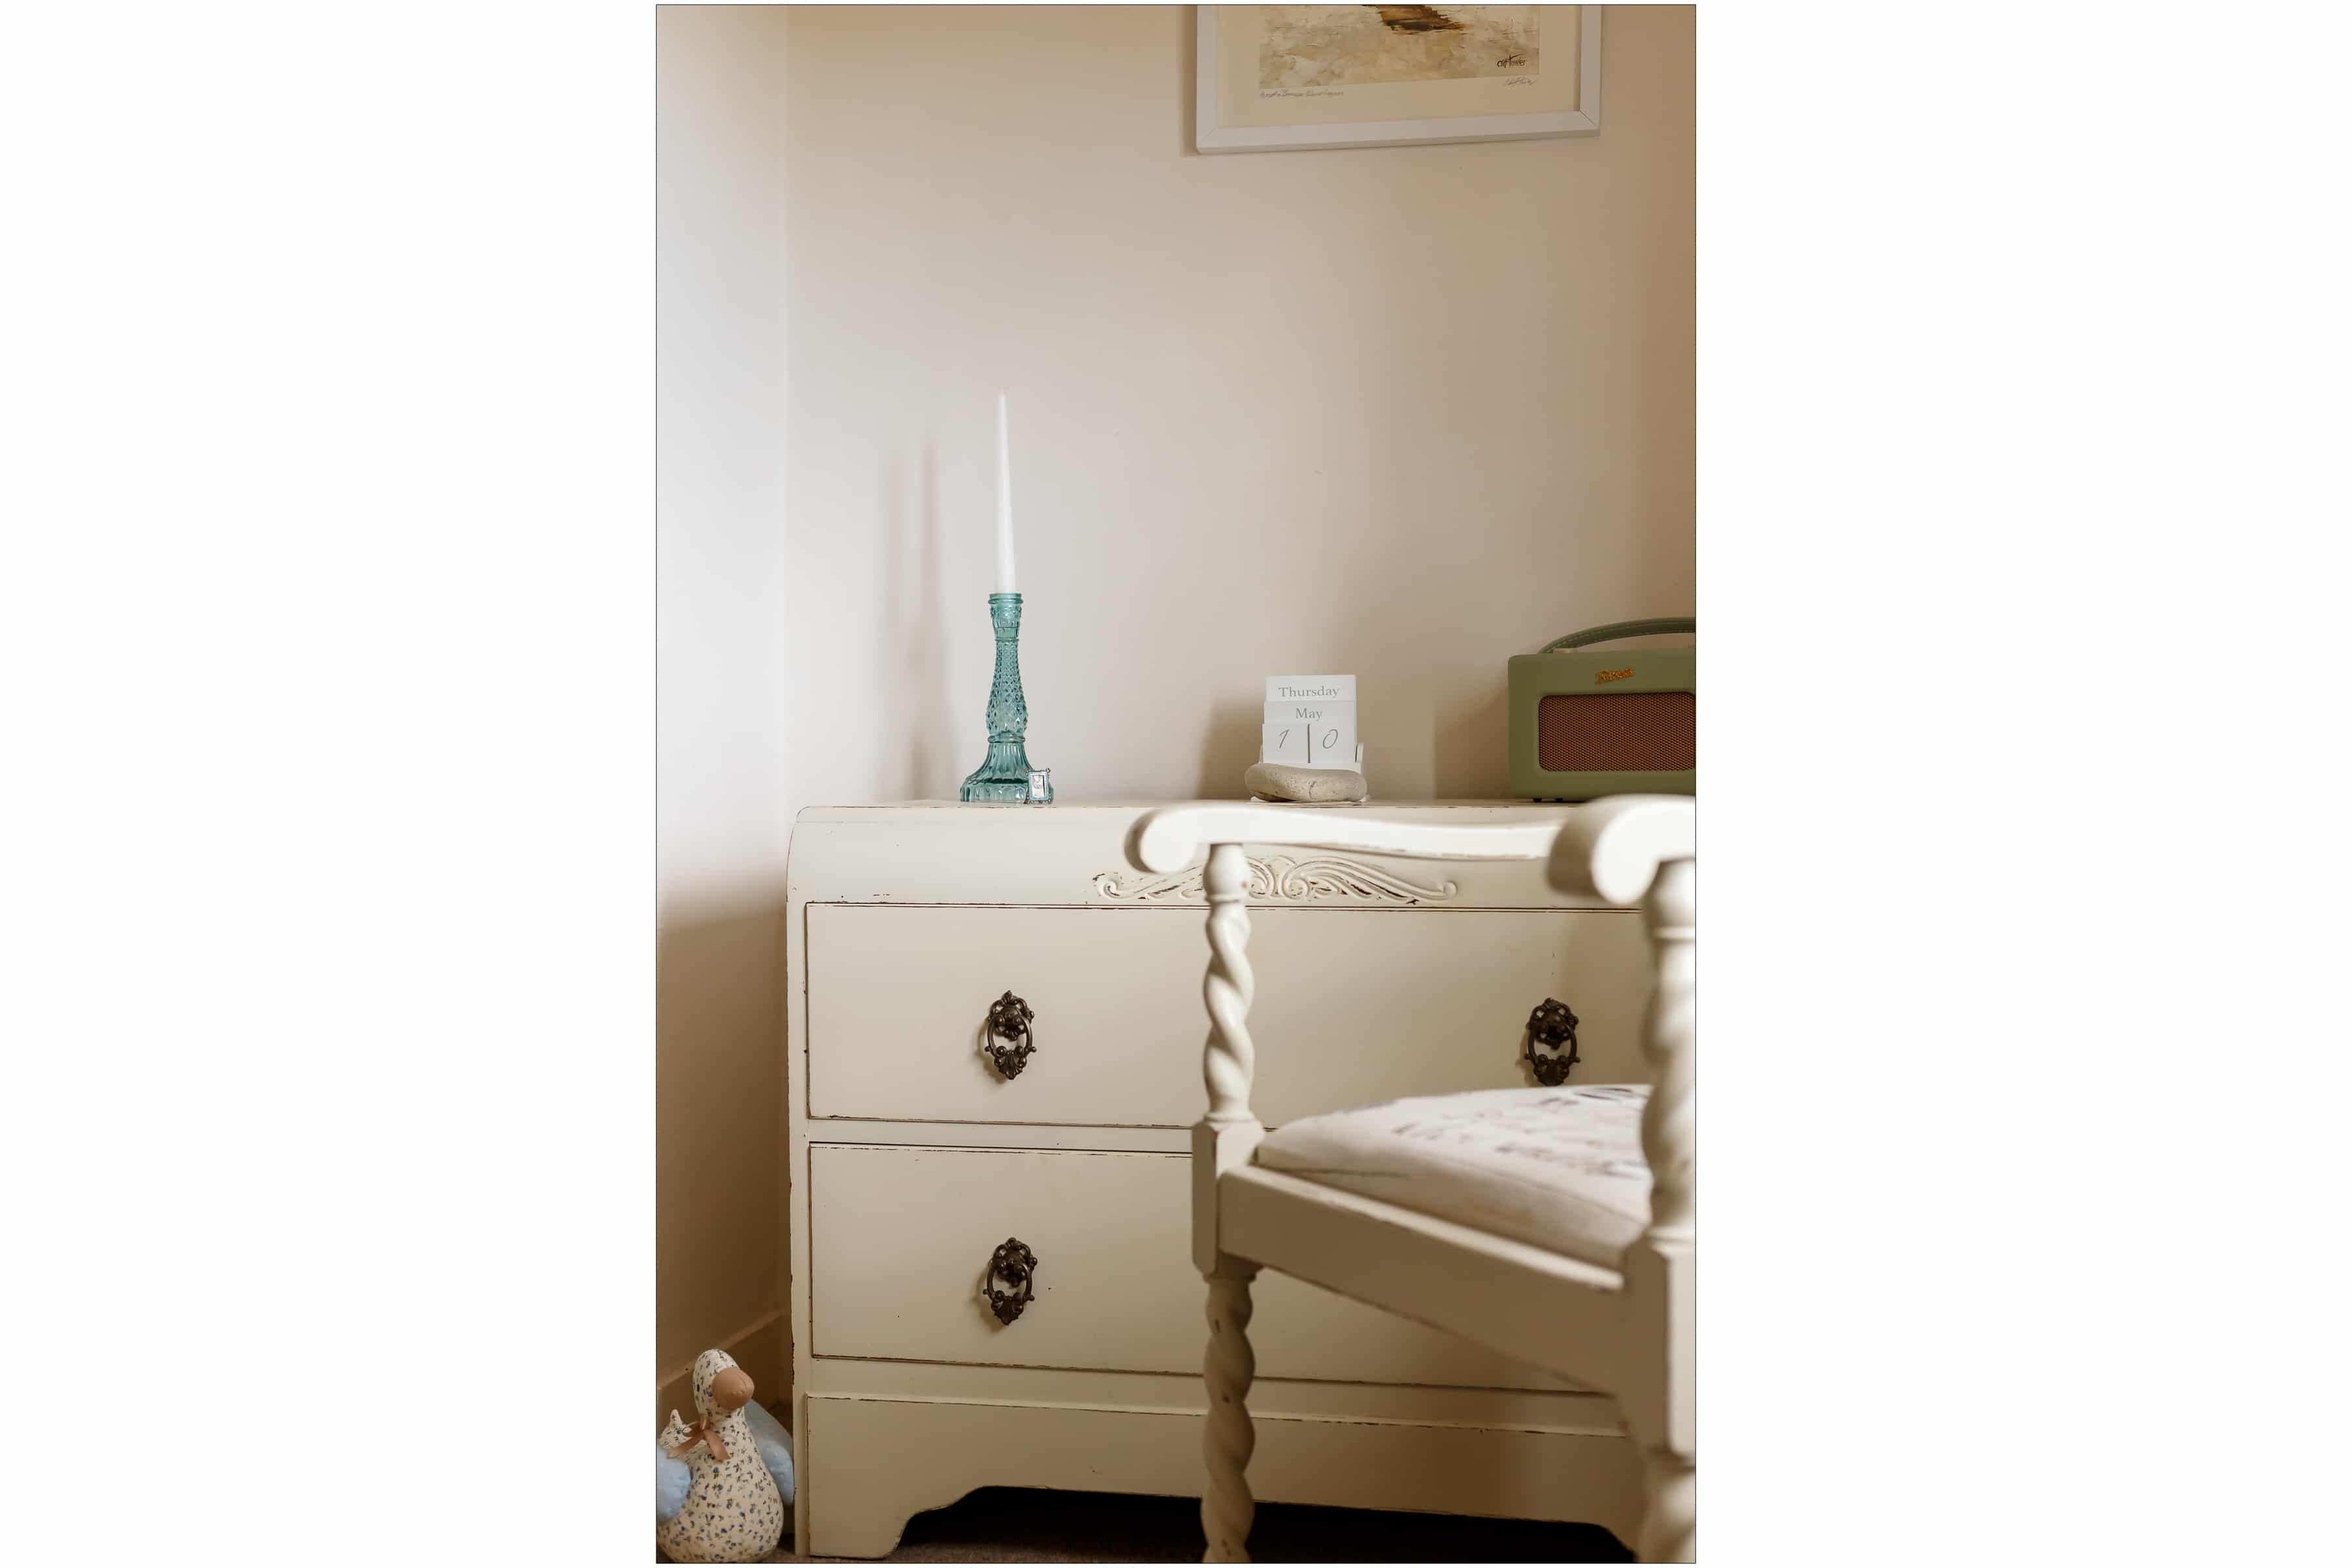 luxury purbeck accommodation bedside